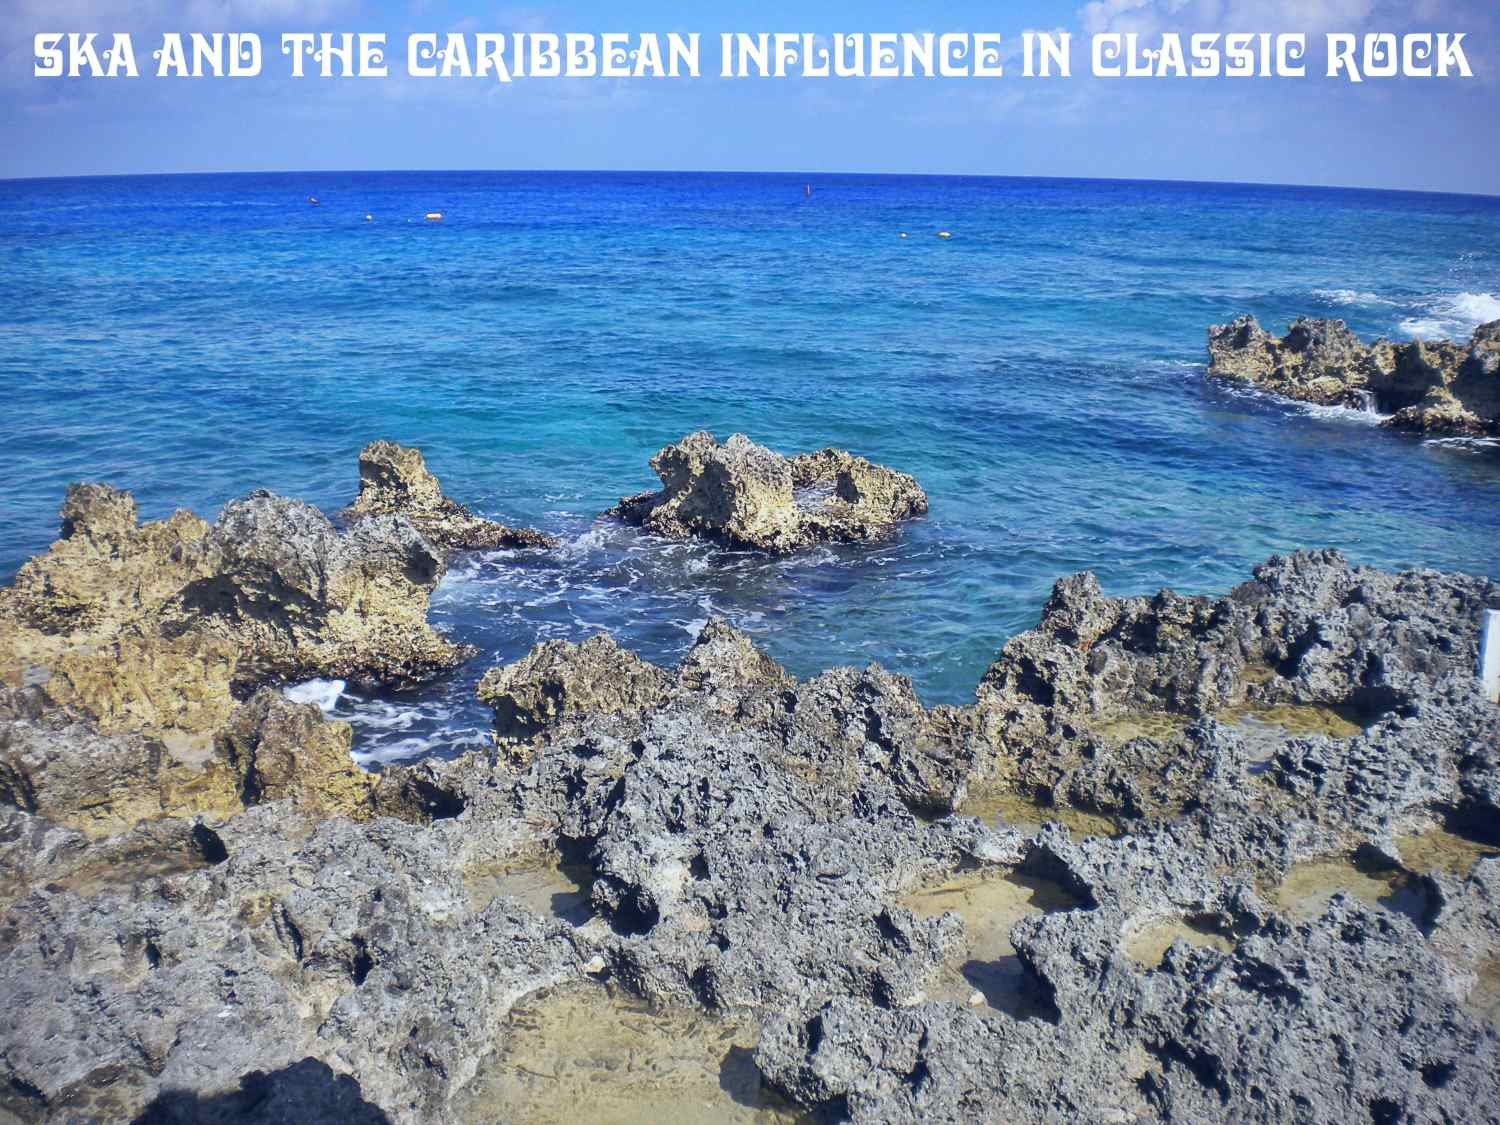 The Diversity of Classic Rock: Ska and the Caribbean influence in Classic Rock